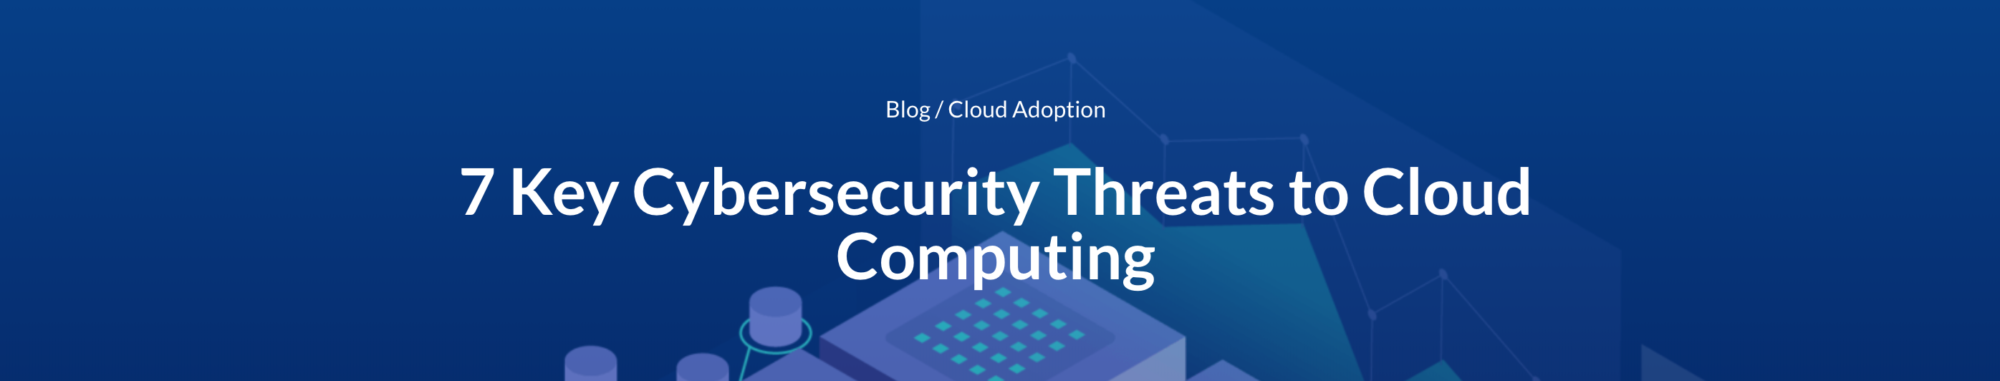 7 Cybersecurity Threats to Cloud Computing